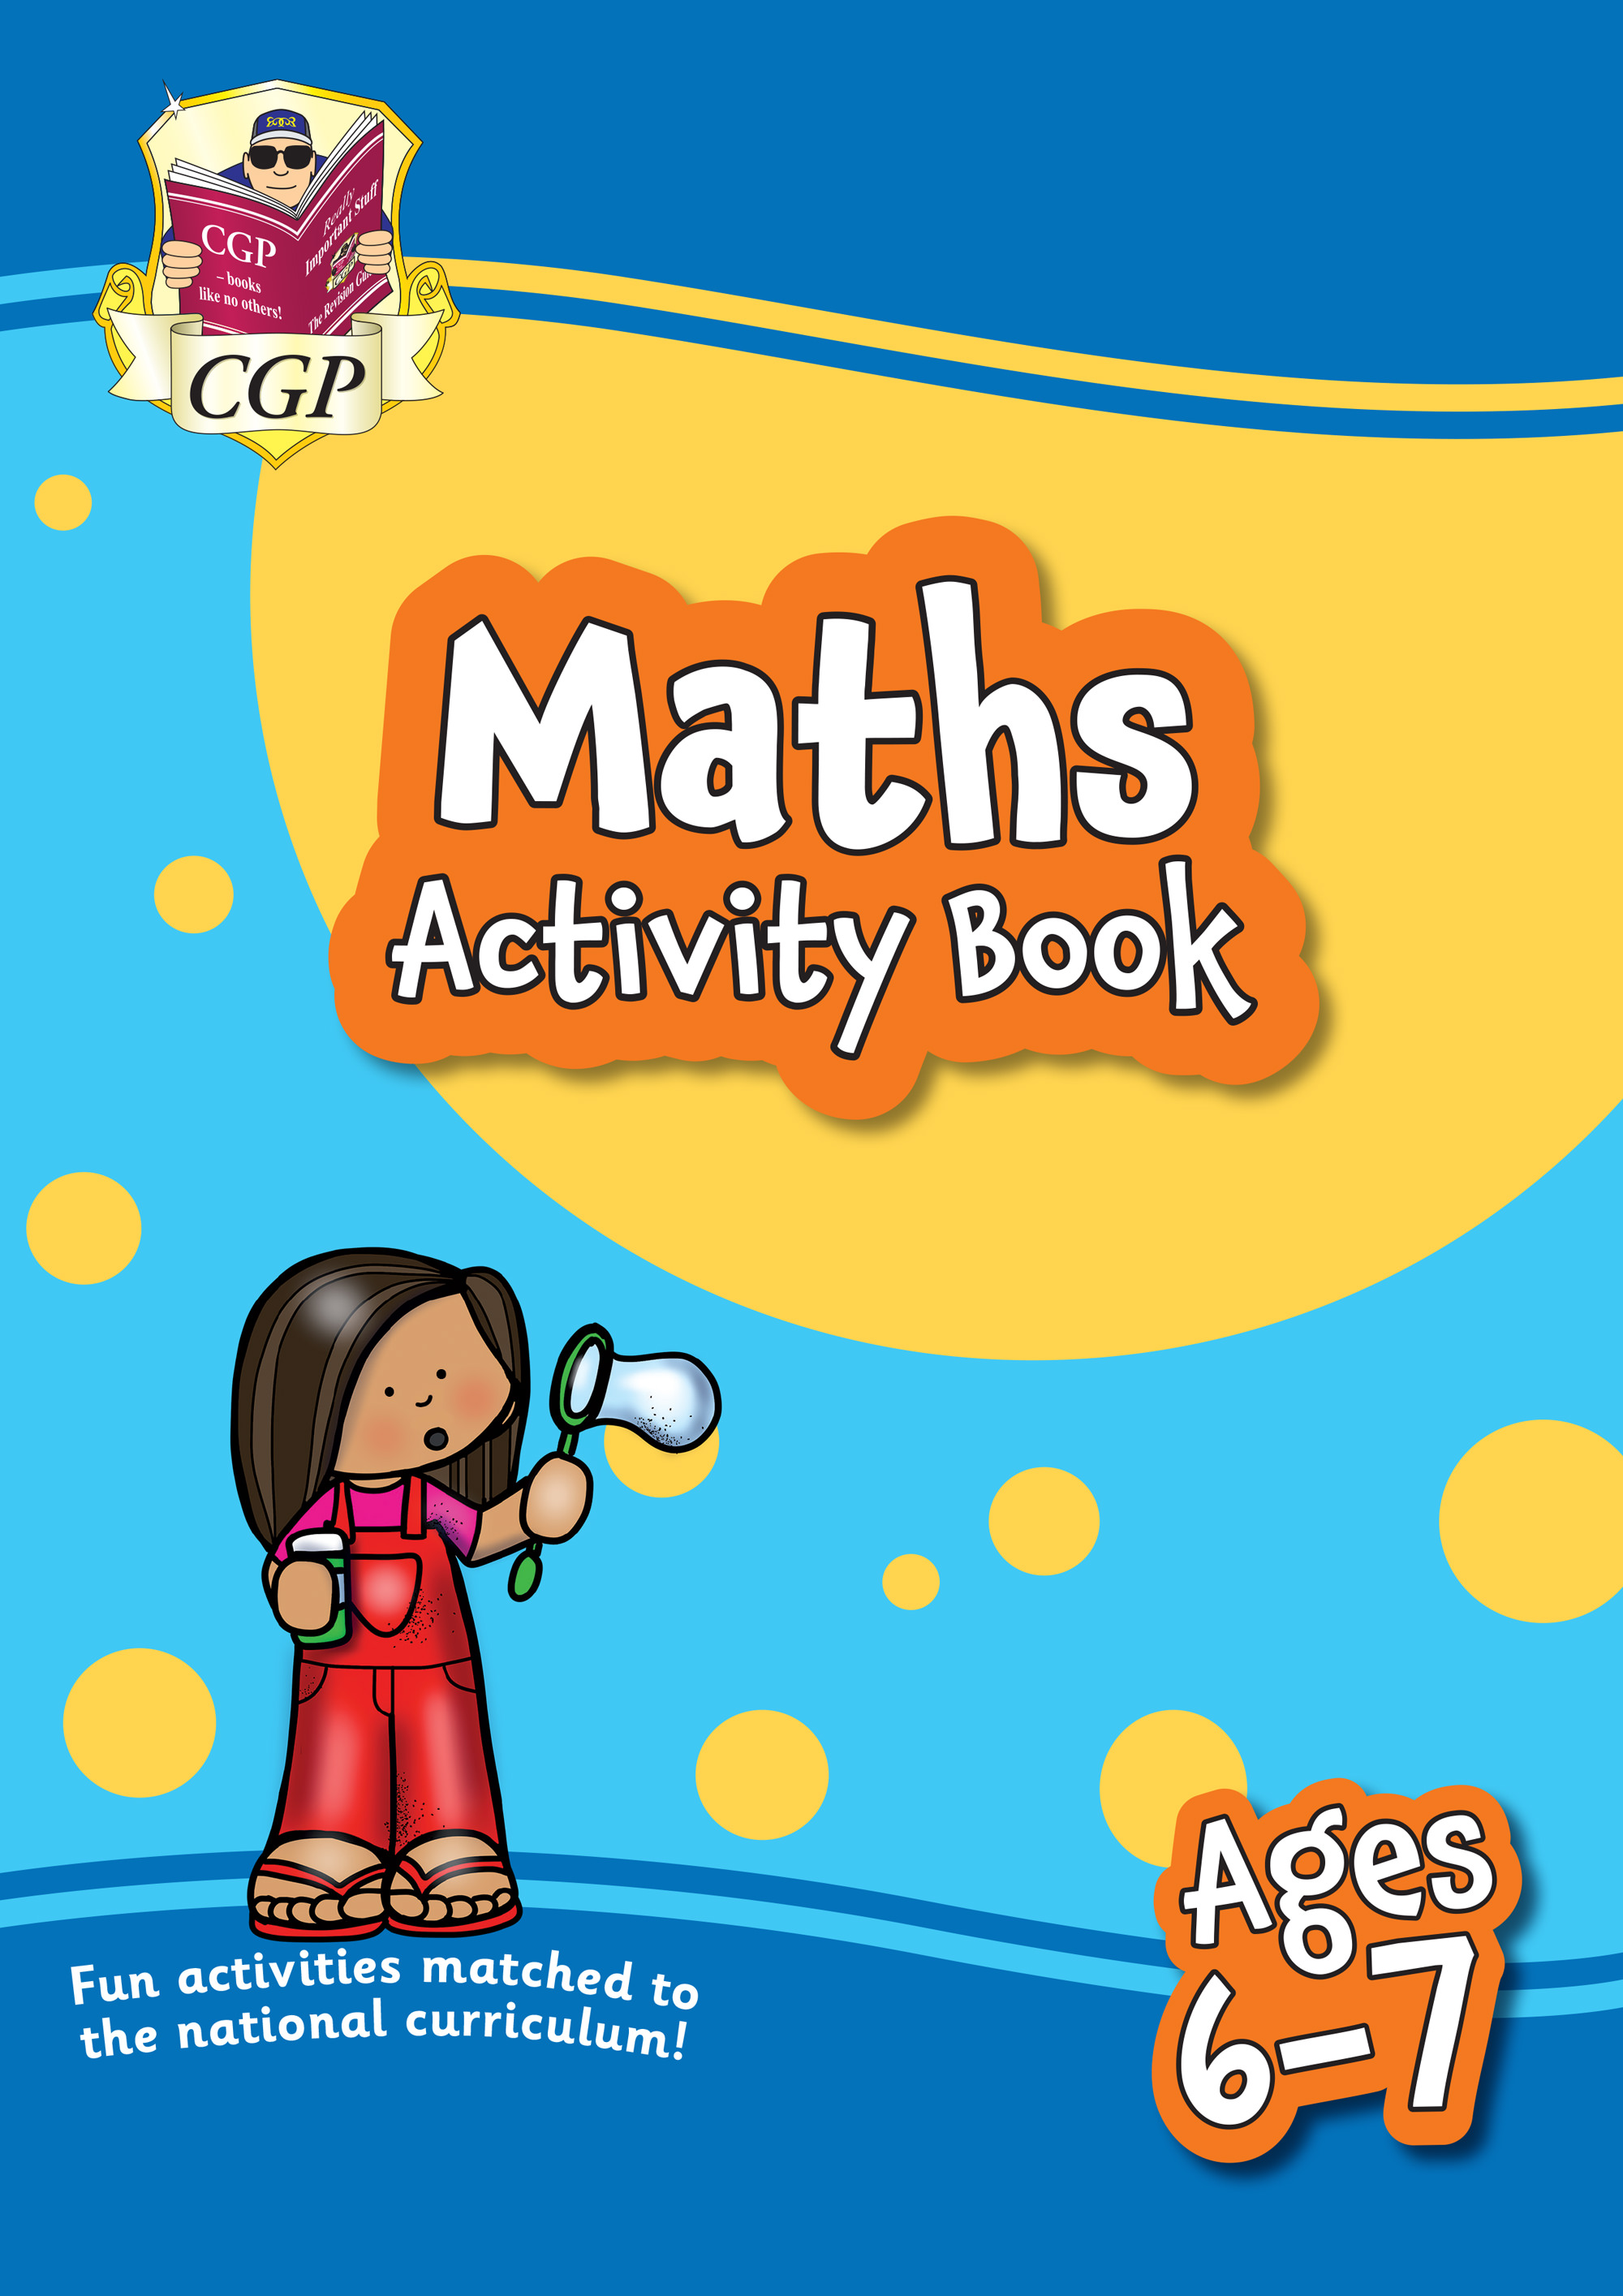 MPF2Q11 - New Maths Activity Book for Ages 6-7: perfect for back-to-school catch-up